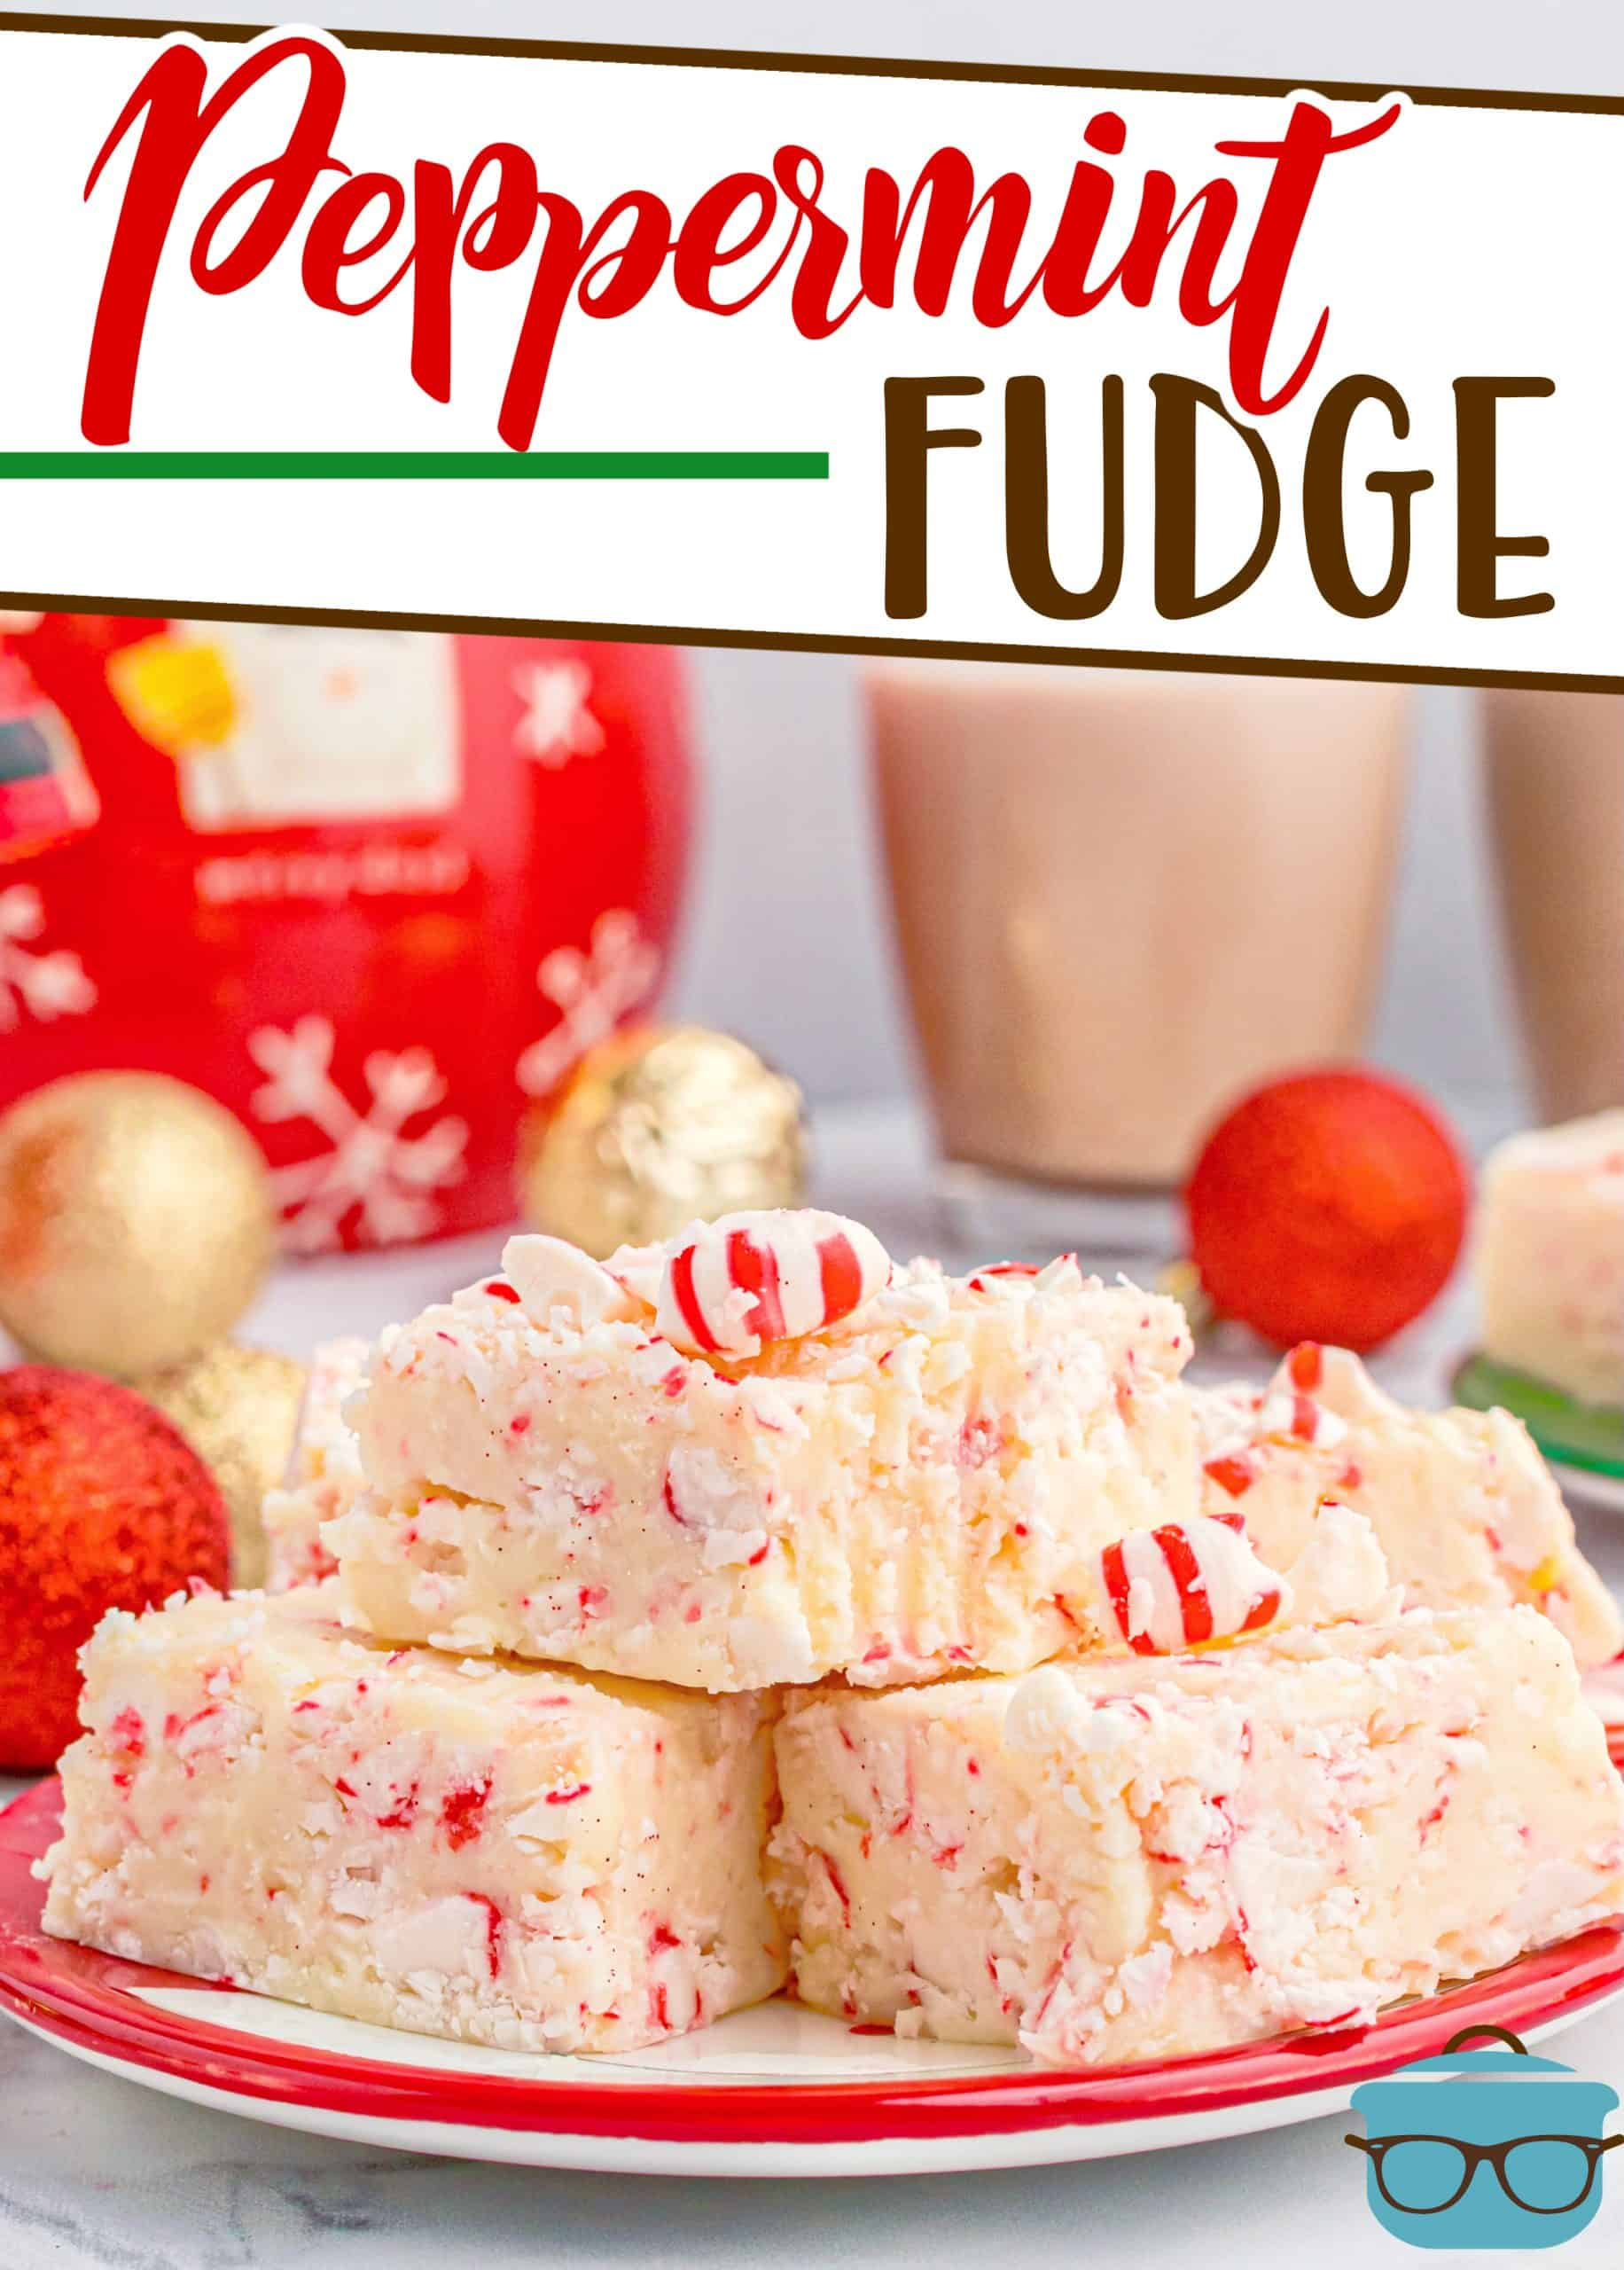 Easy Candy Cane Peppermint Fudge recipe from The Country Cook, pieces of fudge shown stacked on a red and white plate with hot chocolate in the background.